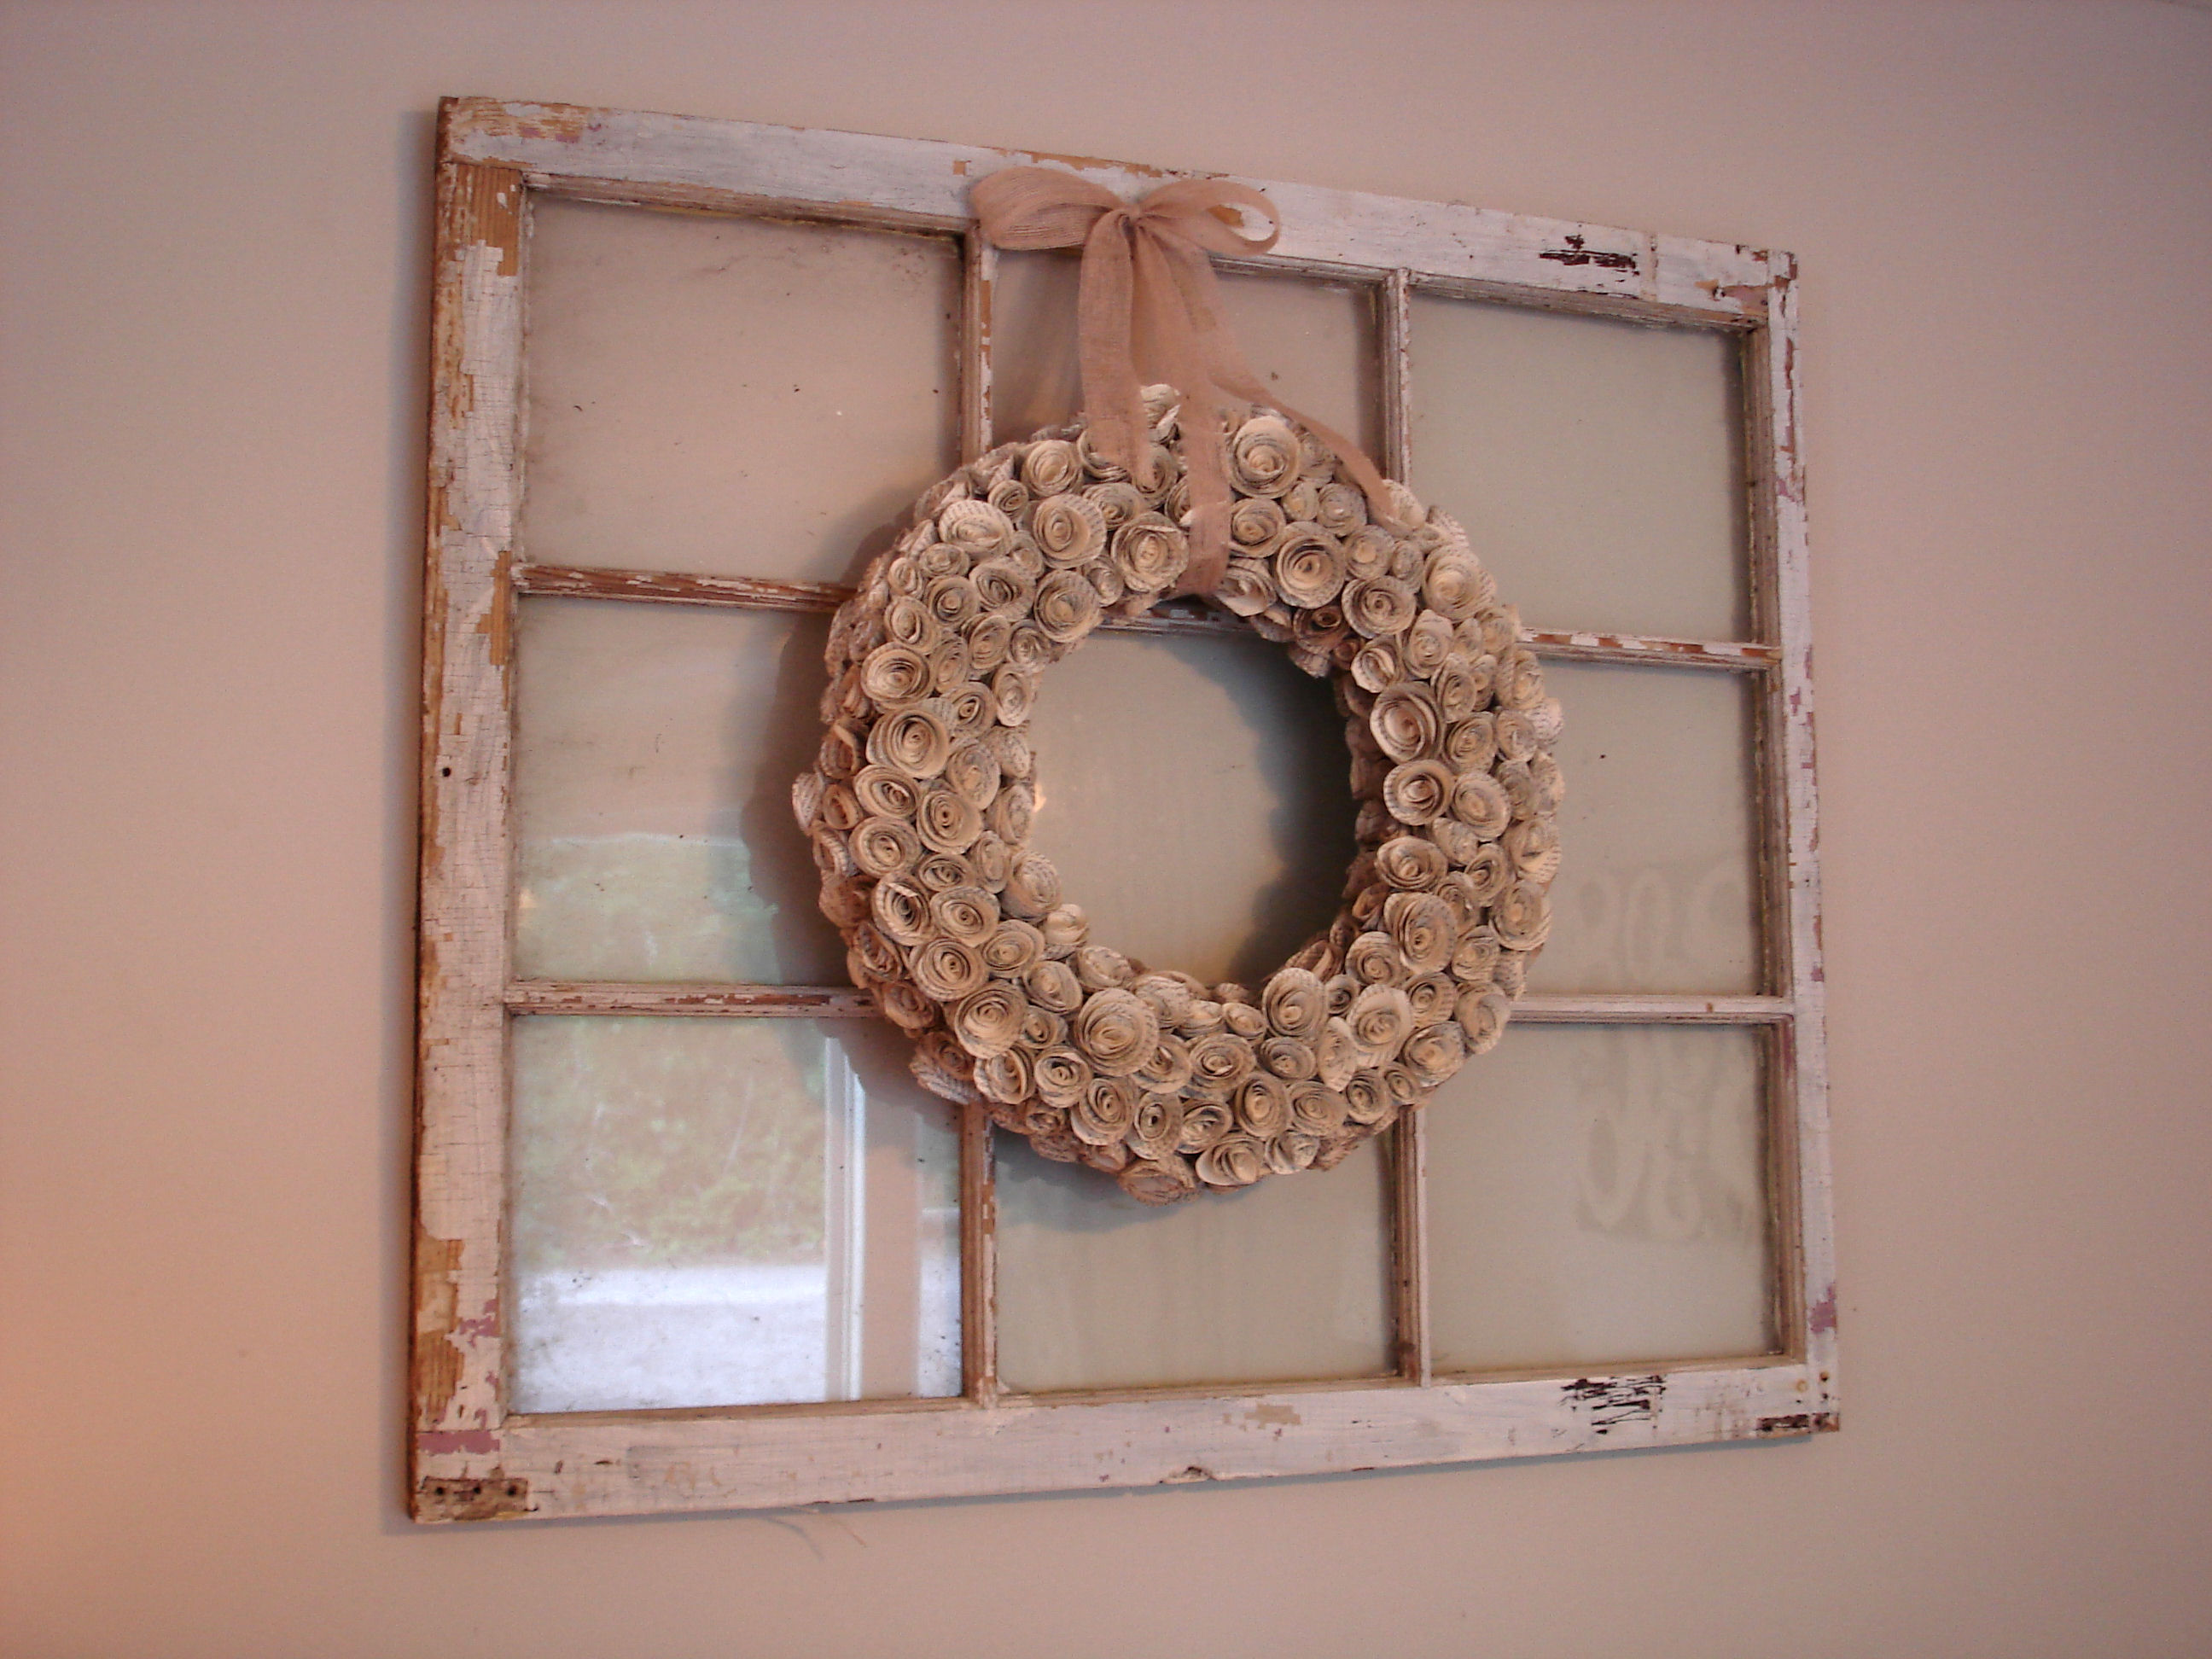 Have You Done Any Decorating With Old Windows? Besides Hanging Them On The  Wall, How Have You Seen Them Used?